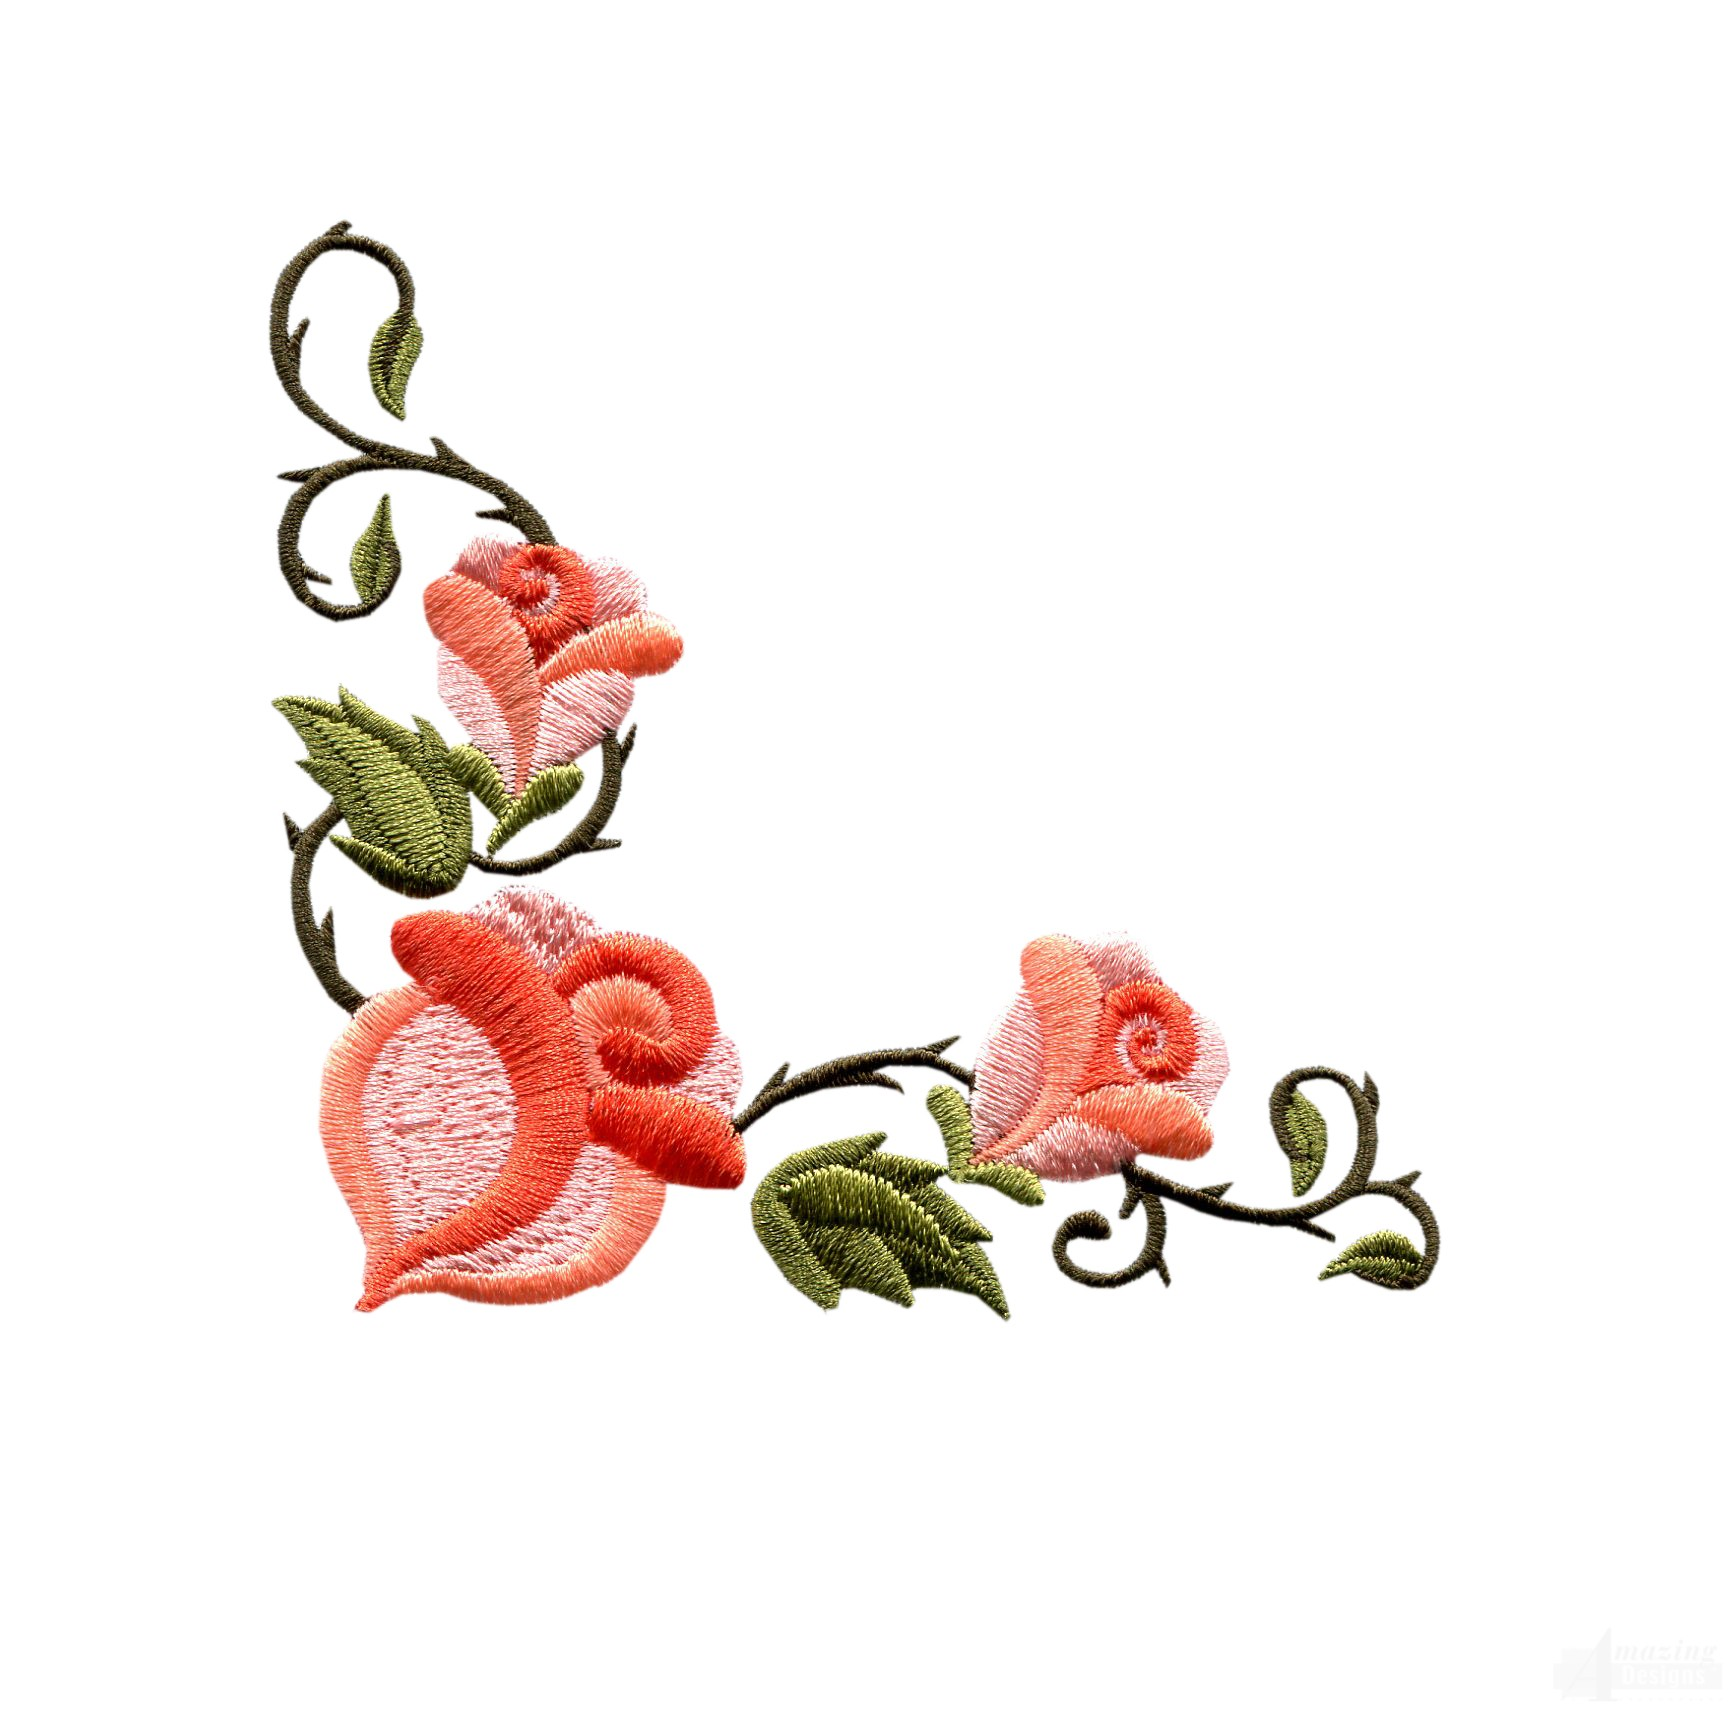 Rose floral border embroidery design